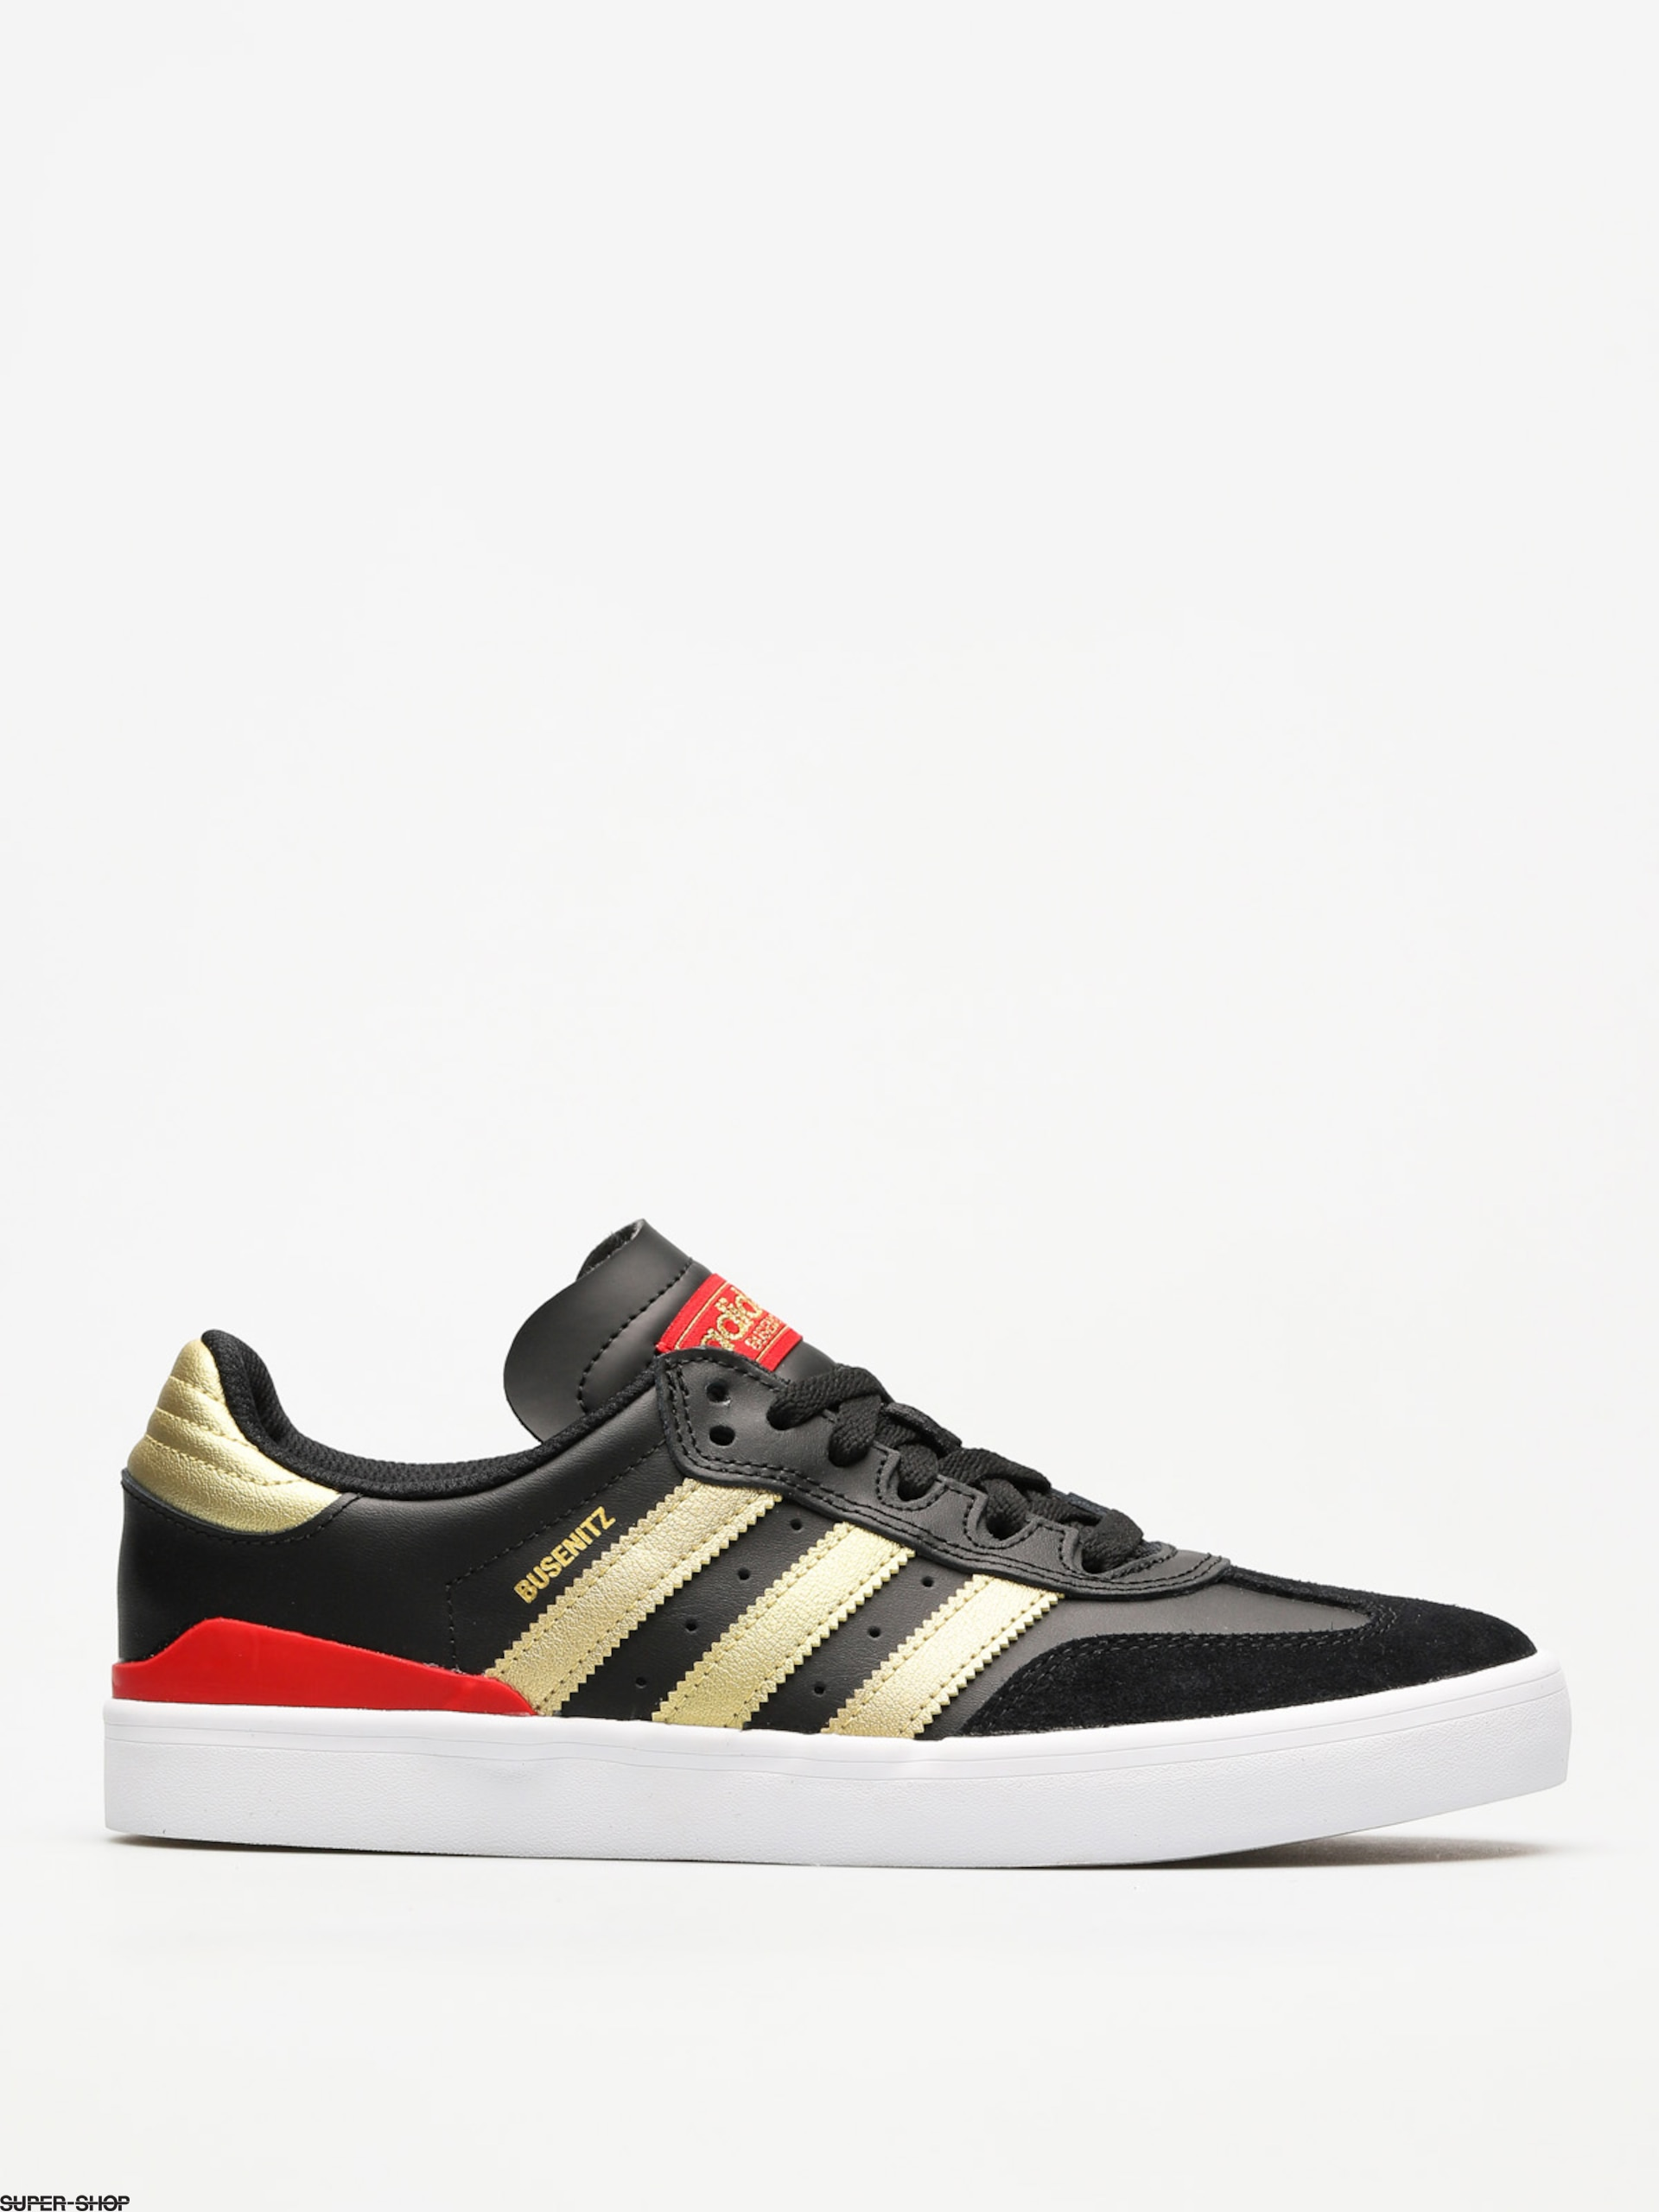 6184fe6addef72 adidas Shoes Busenitz Vulc Rx (core black gold met. scarlet)